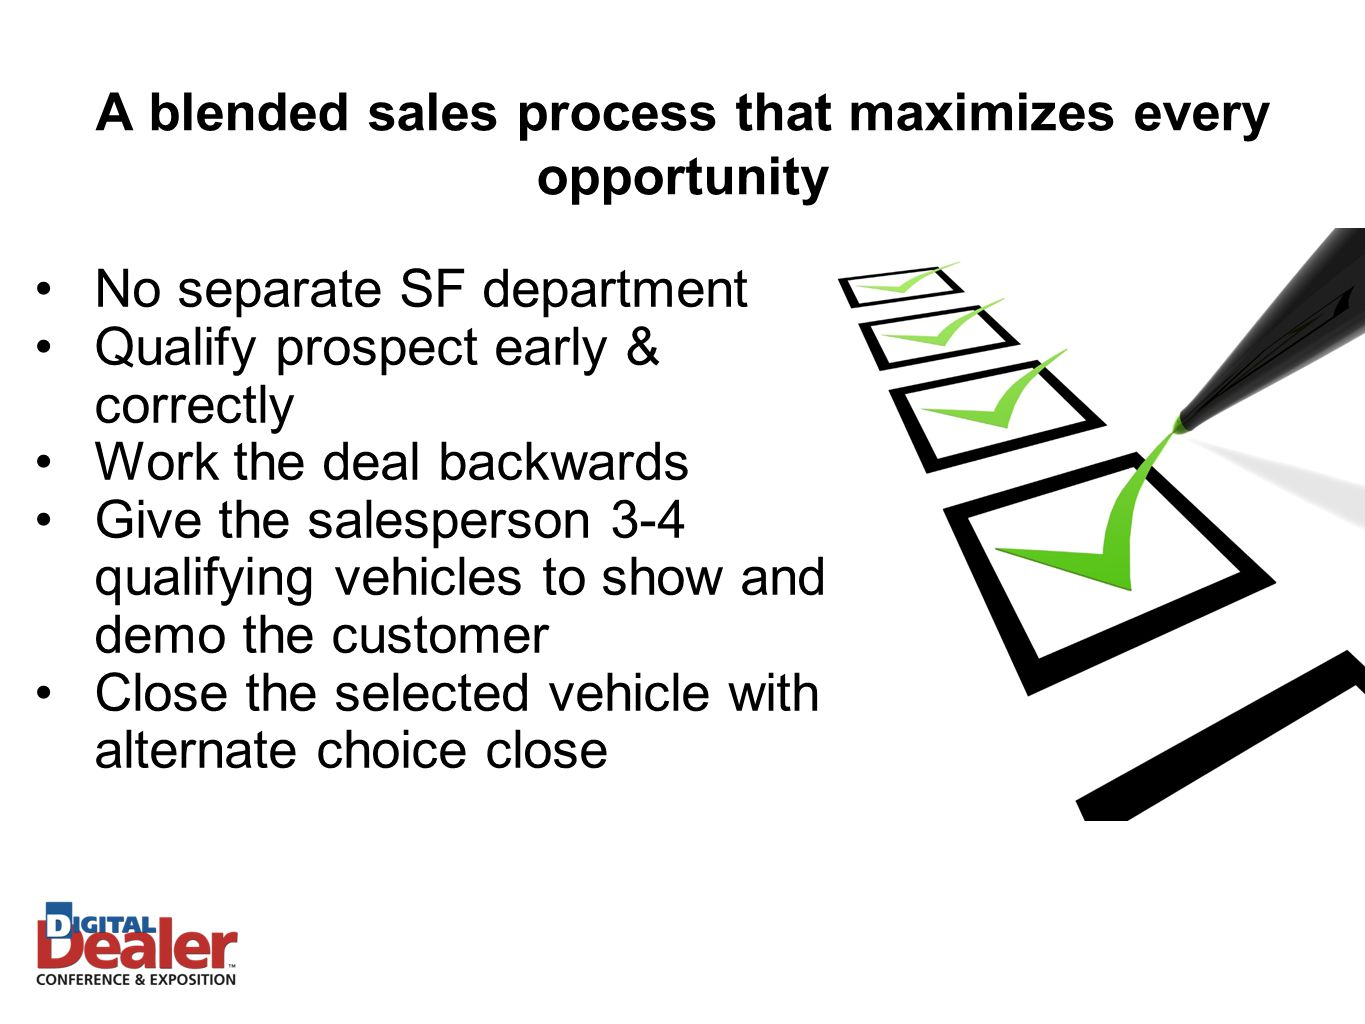 No separate SF department Qualify prospect early & correctly Work the deal backwards Give the salesperson 3-4 qualifying vehicles to show and demo the customer Close the selected vehicle with alternate choice close A blended sales process that maximizes every opportunity